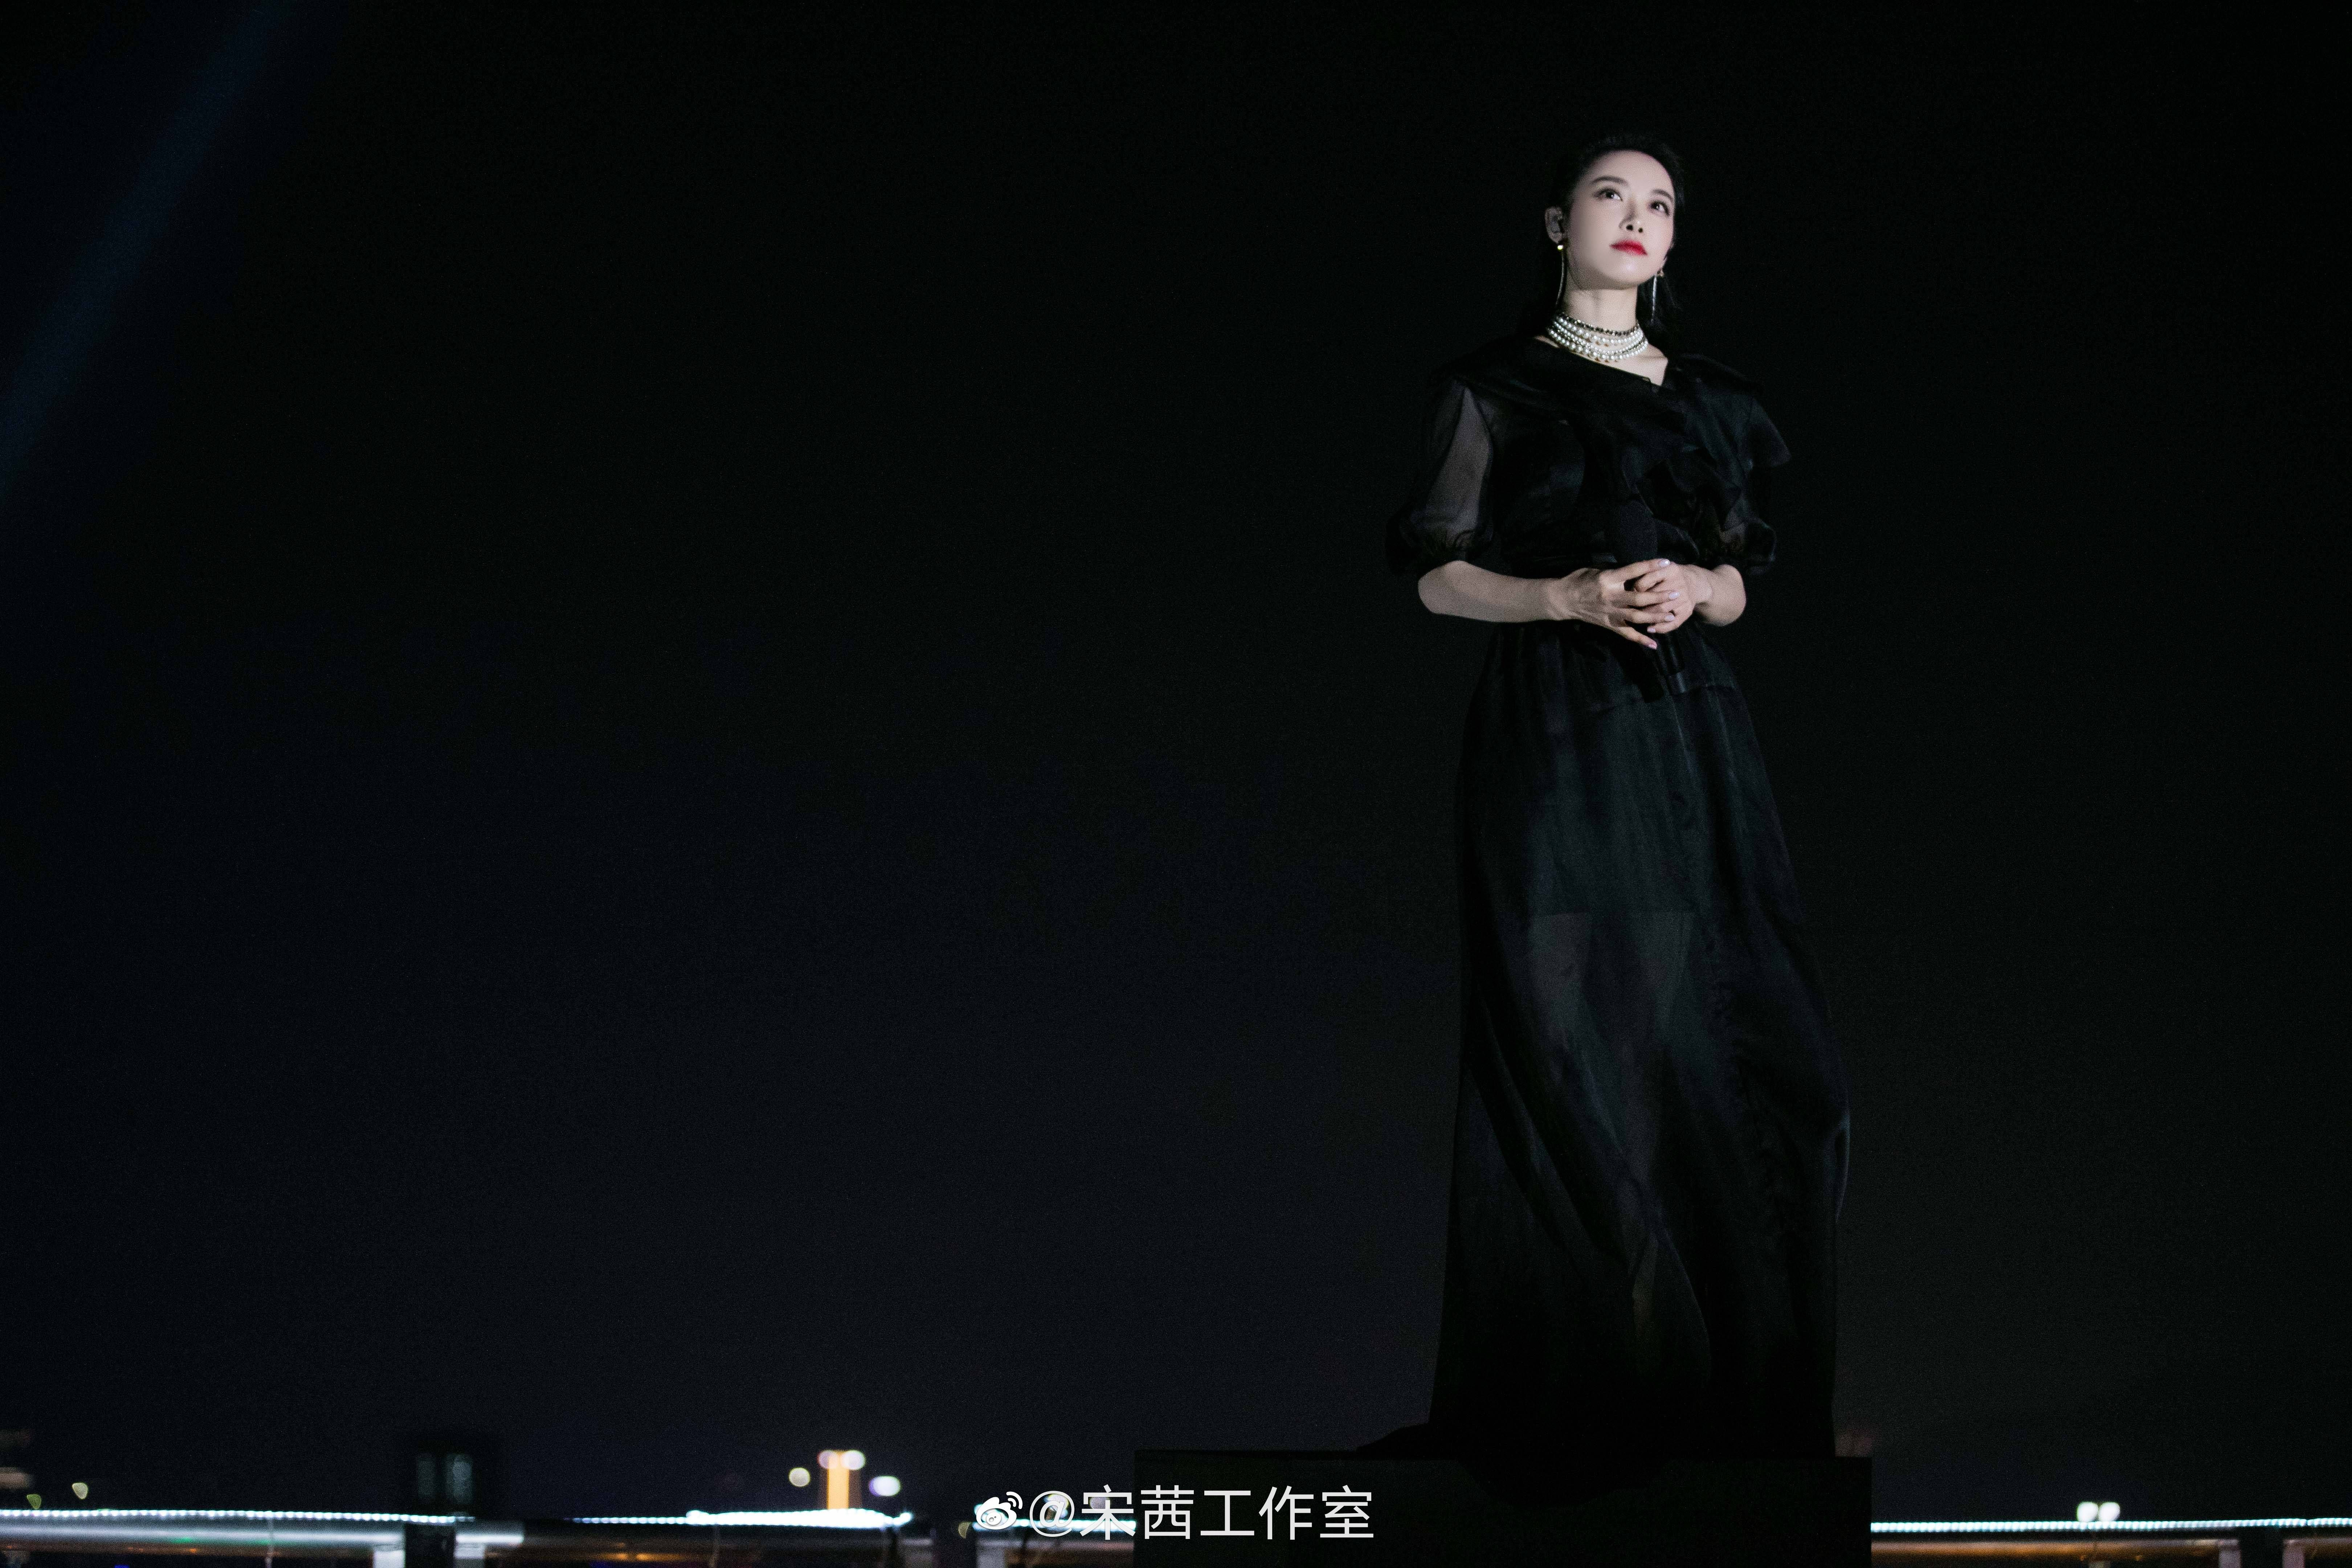 Pin by Tiểu Anh | 小英 on 宋茜 in 2020 | Victoria song ...